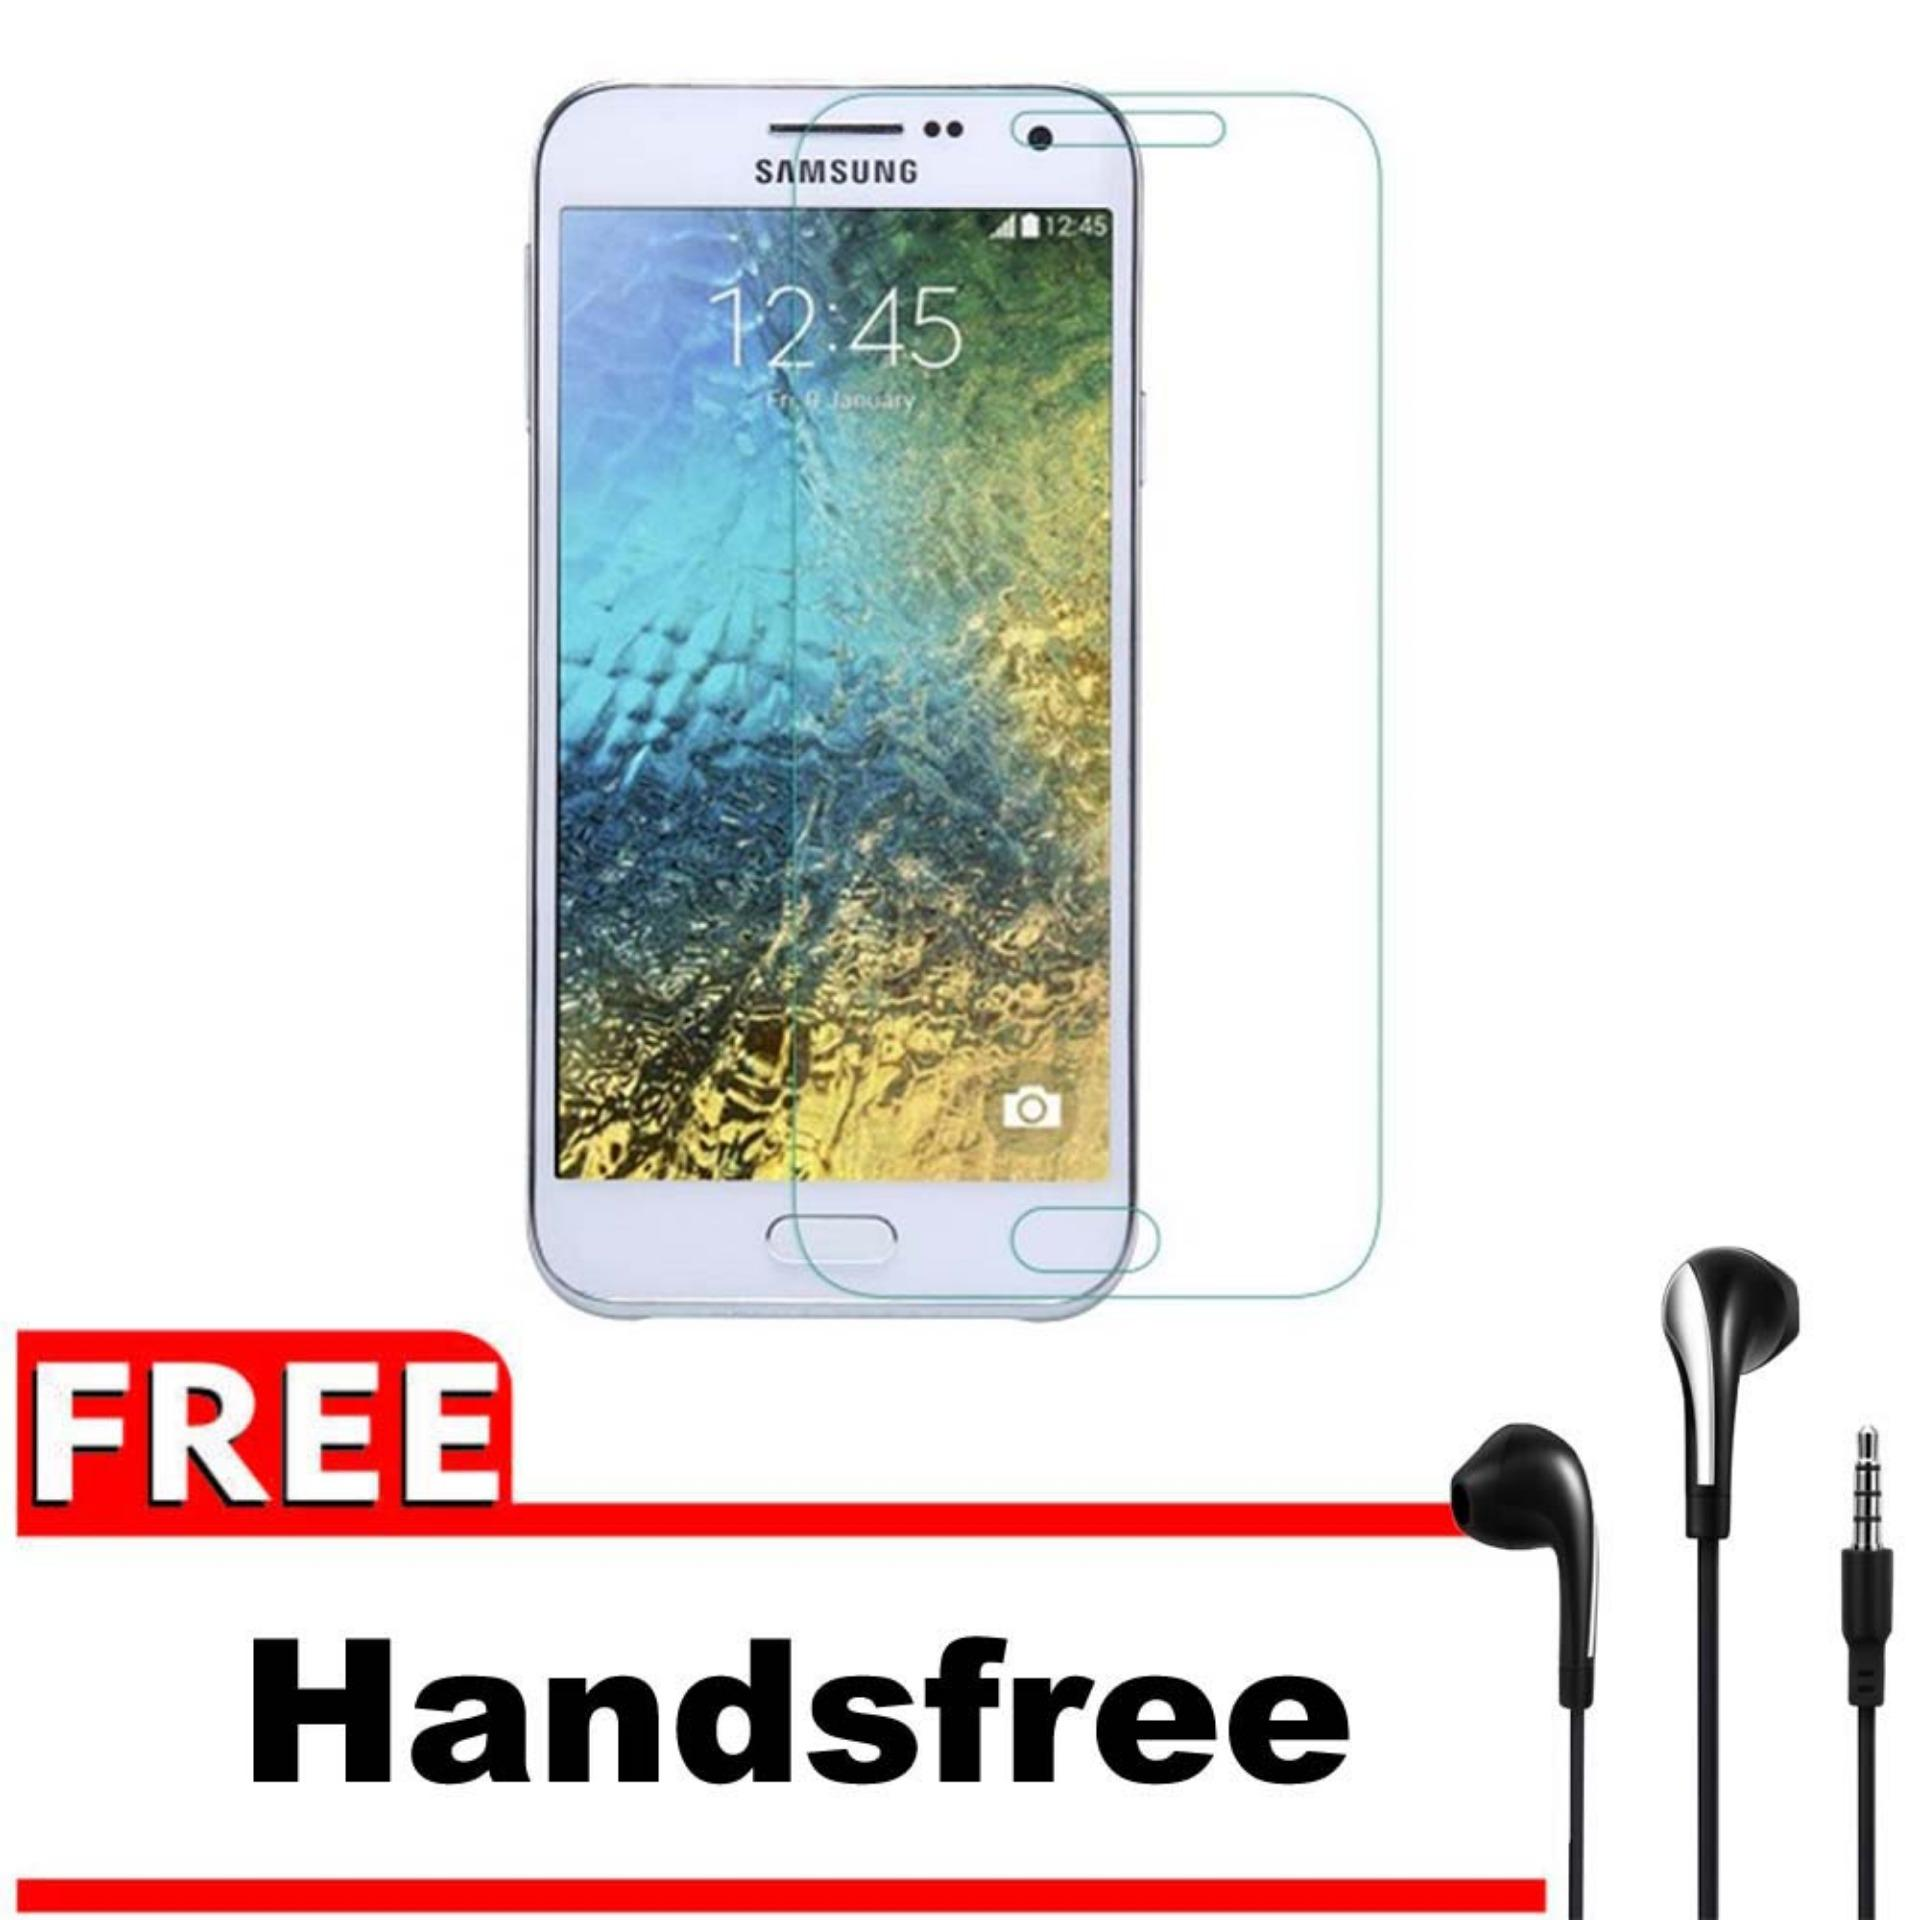 ... Tempered Glass 9H Screen Protector 0.32mm + Gratis Free Handsfree Earphone Headset Universal - Bening TransparanIDR15520. Rp 15.520